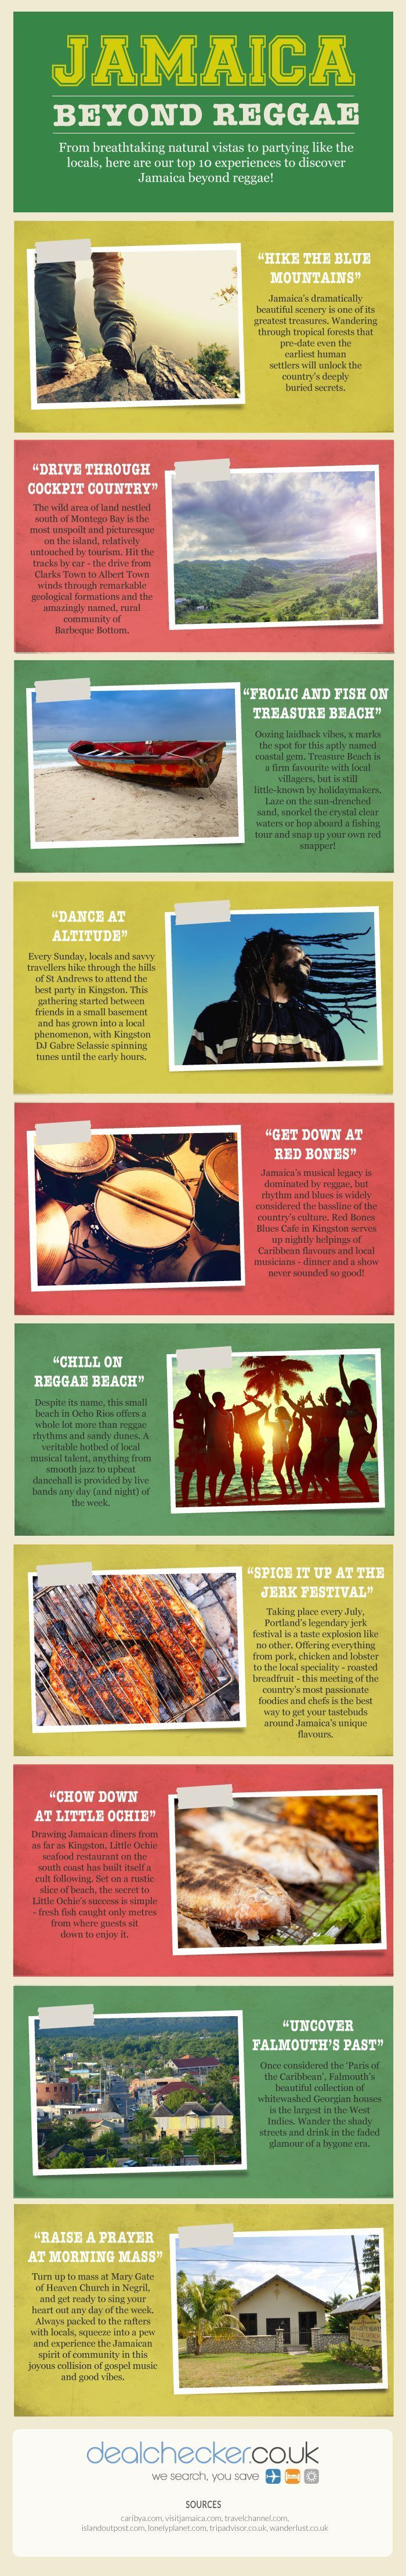 Jamaica: Beyond Reggae #infographic #Travel